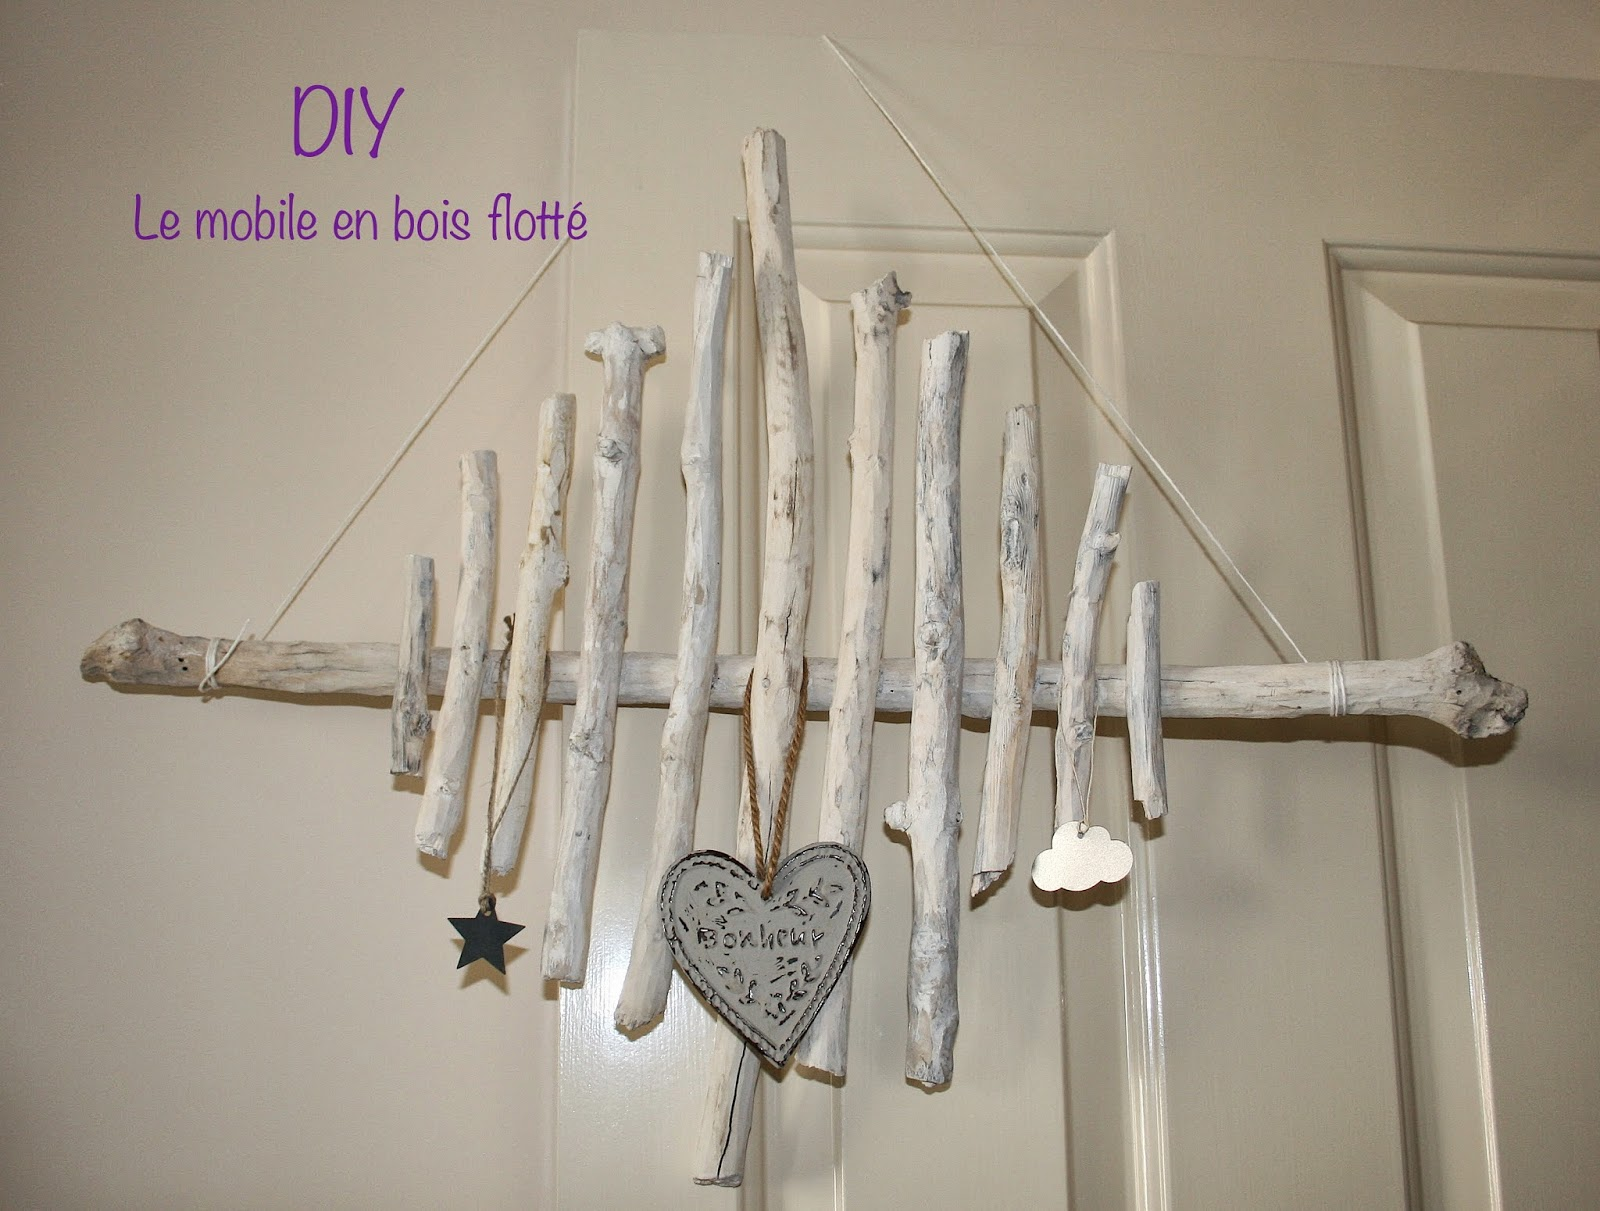 Le blog d 39 anastasia diy le mobile en bois flott for Mobile en bois flotte